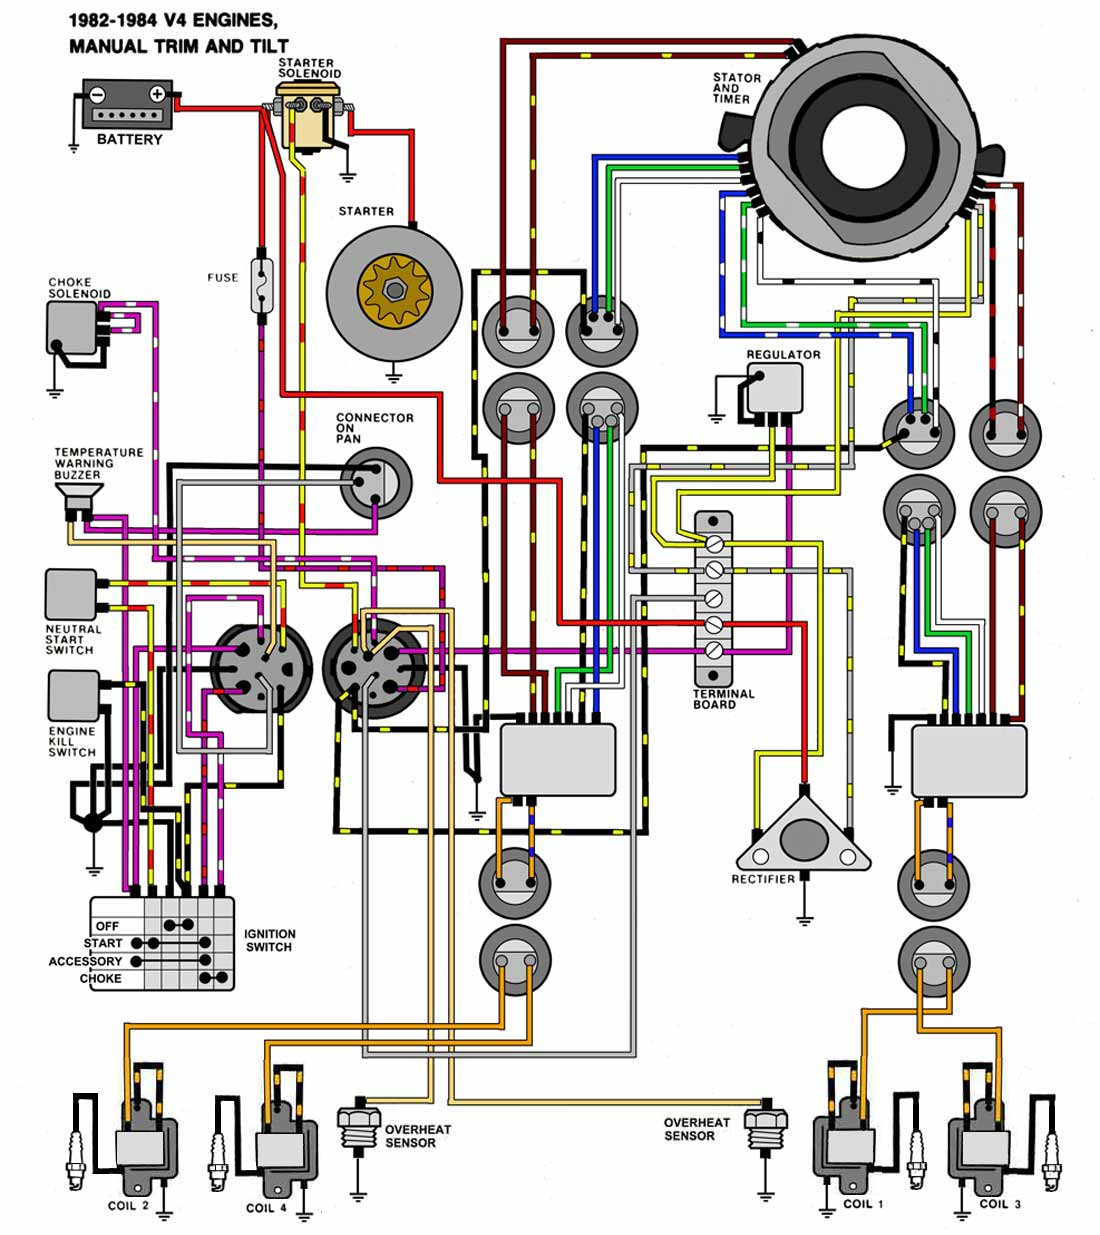 evinrude johnson outboard wiring diagrams mastertech marineEvinrude Ignition Switch Wiring Diagram #12